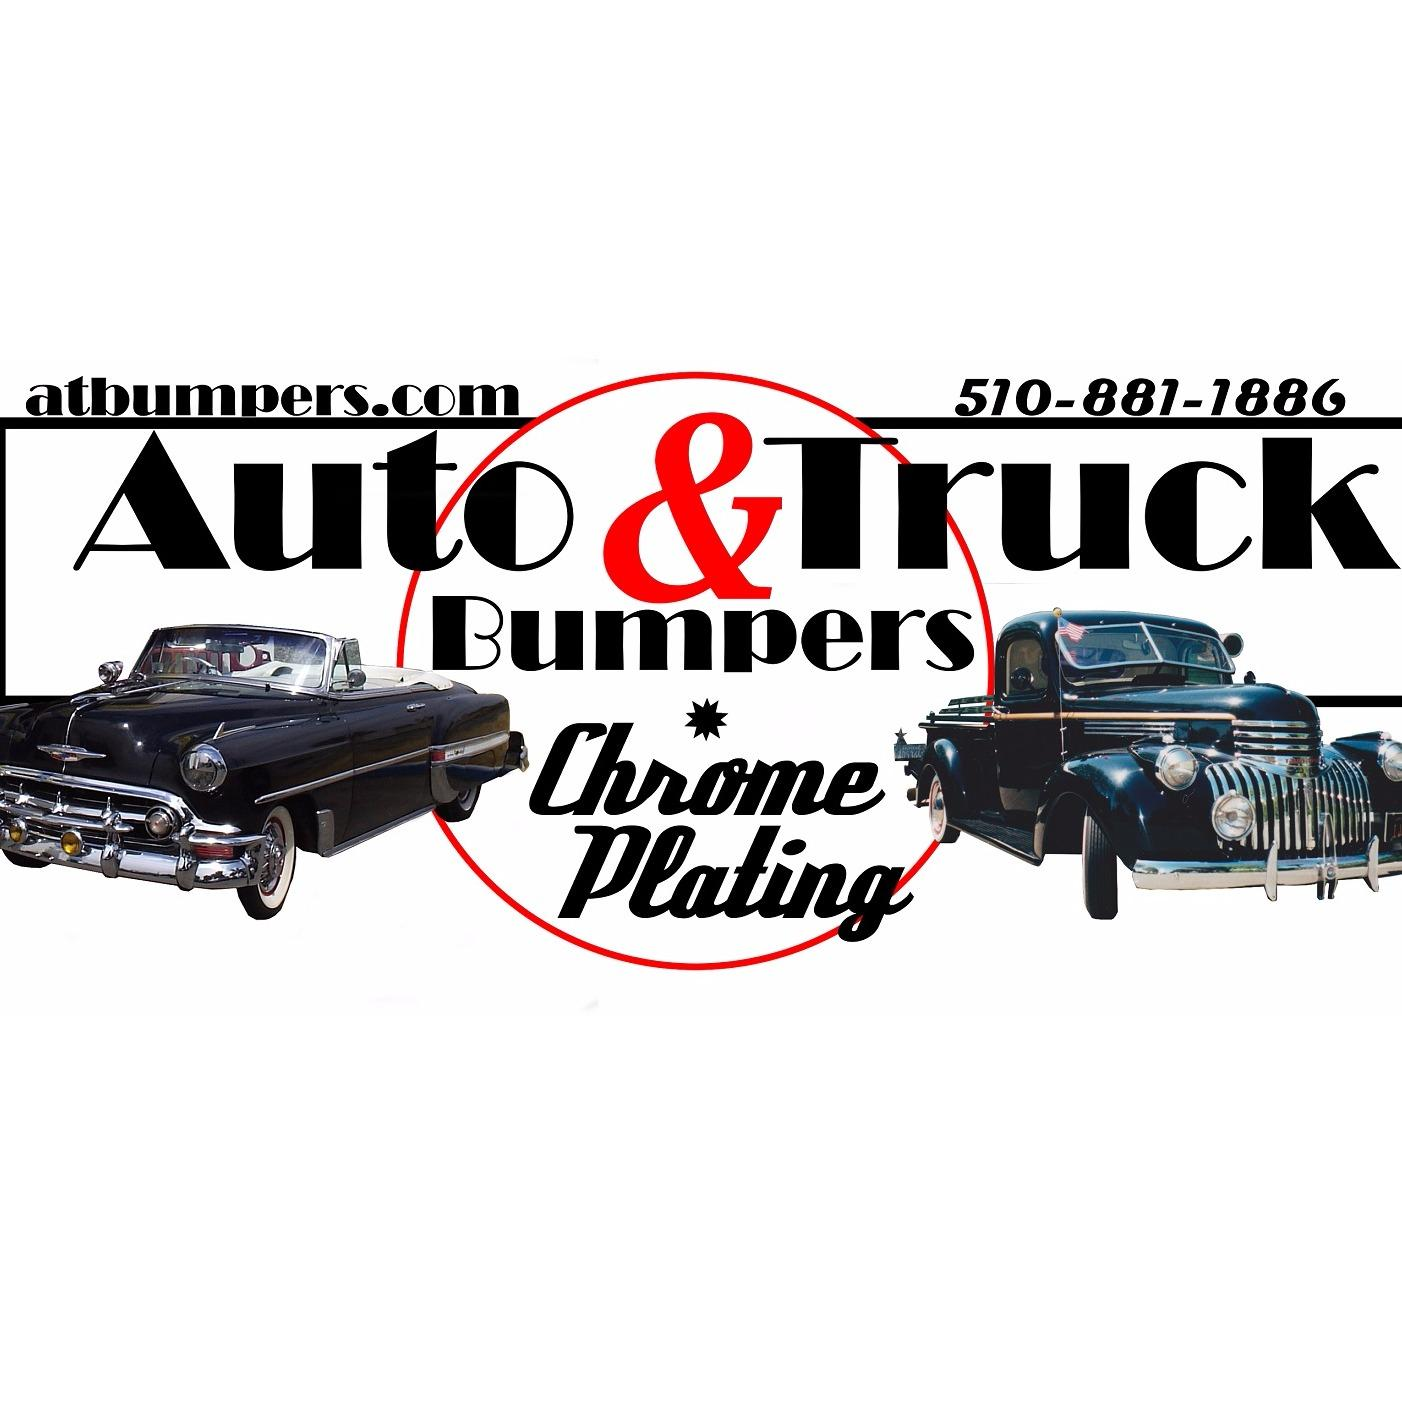 Auto & Truck Bumpers Recyclers, Inc - Hayward, CA - Auto Body Repair & Painting